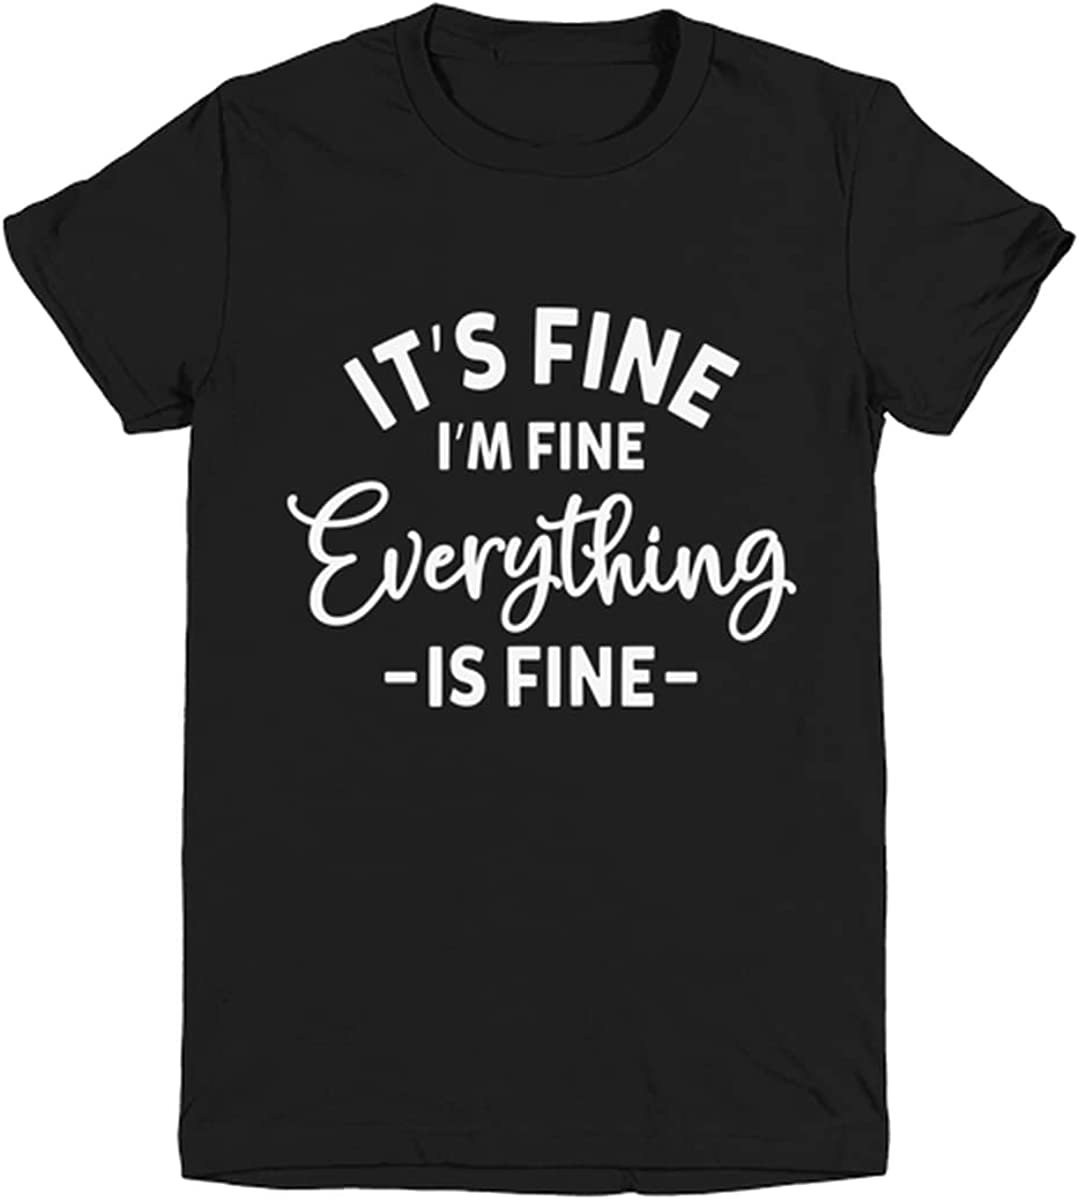 It's Fine I'm Fine Everything is Fine Tops Plus Size Girls Boys Youth Tees T-Shirt Black